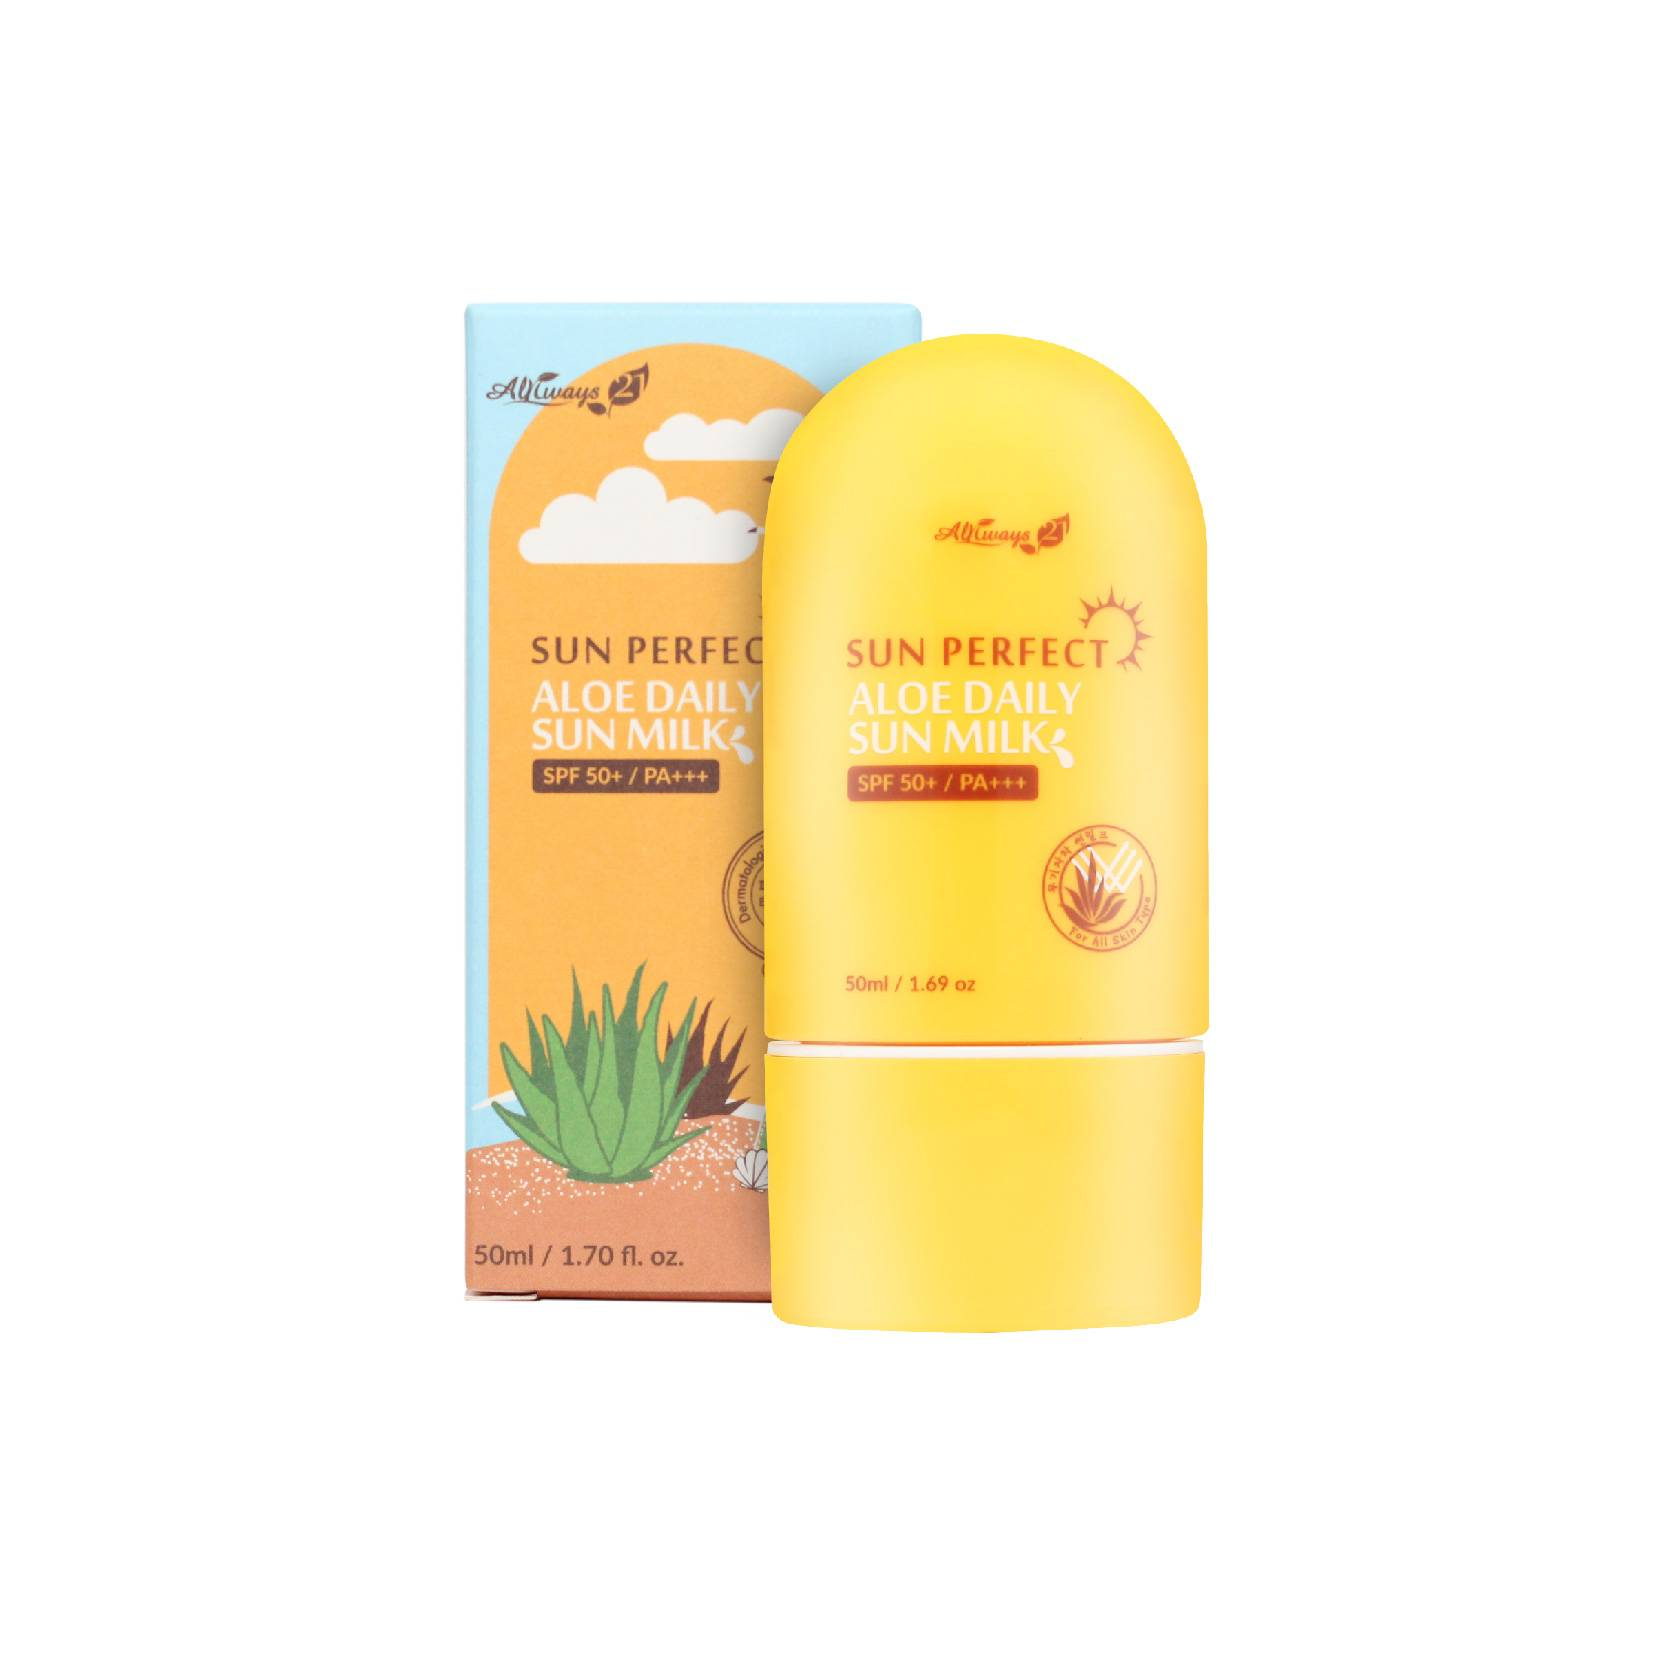 ALWAYS21 Sun Perfect Aloe Daily Sun Milk SPF50+ PA+++